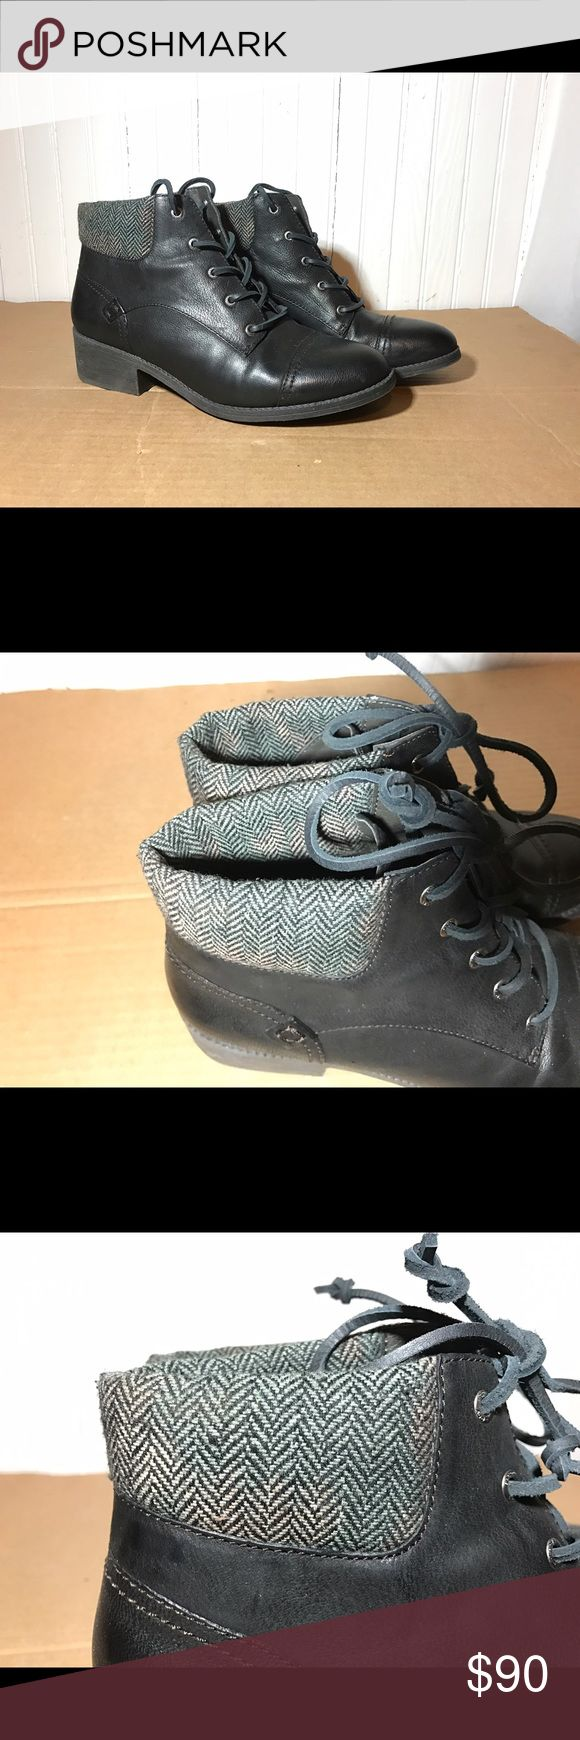 Black Sperry Topsiders Black Sperry women's topsiders, worn once, originally $120 Sperry Shoes Ankle Boots & Booties